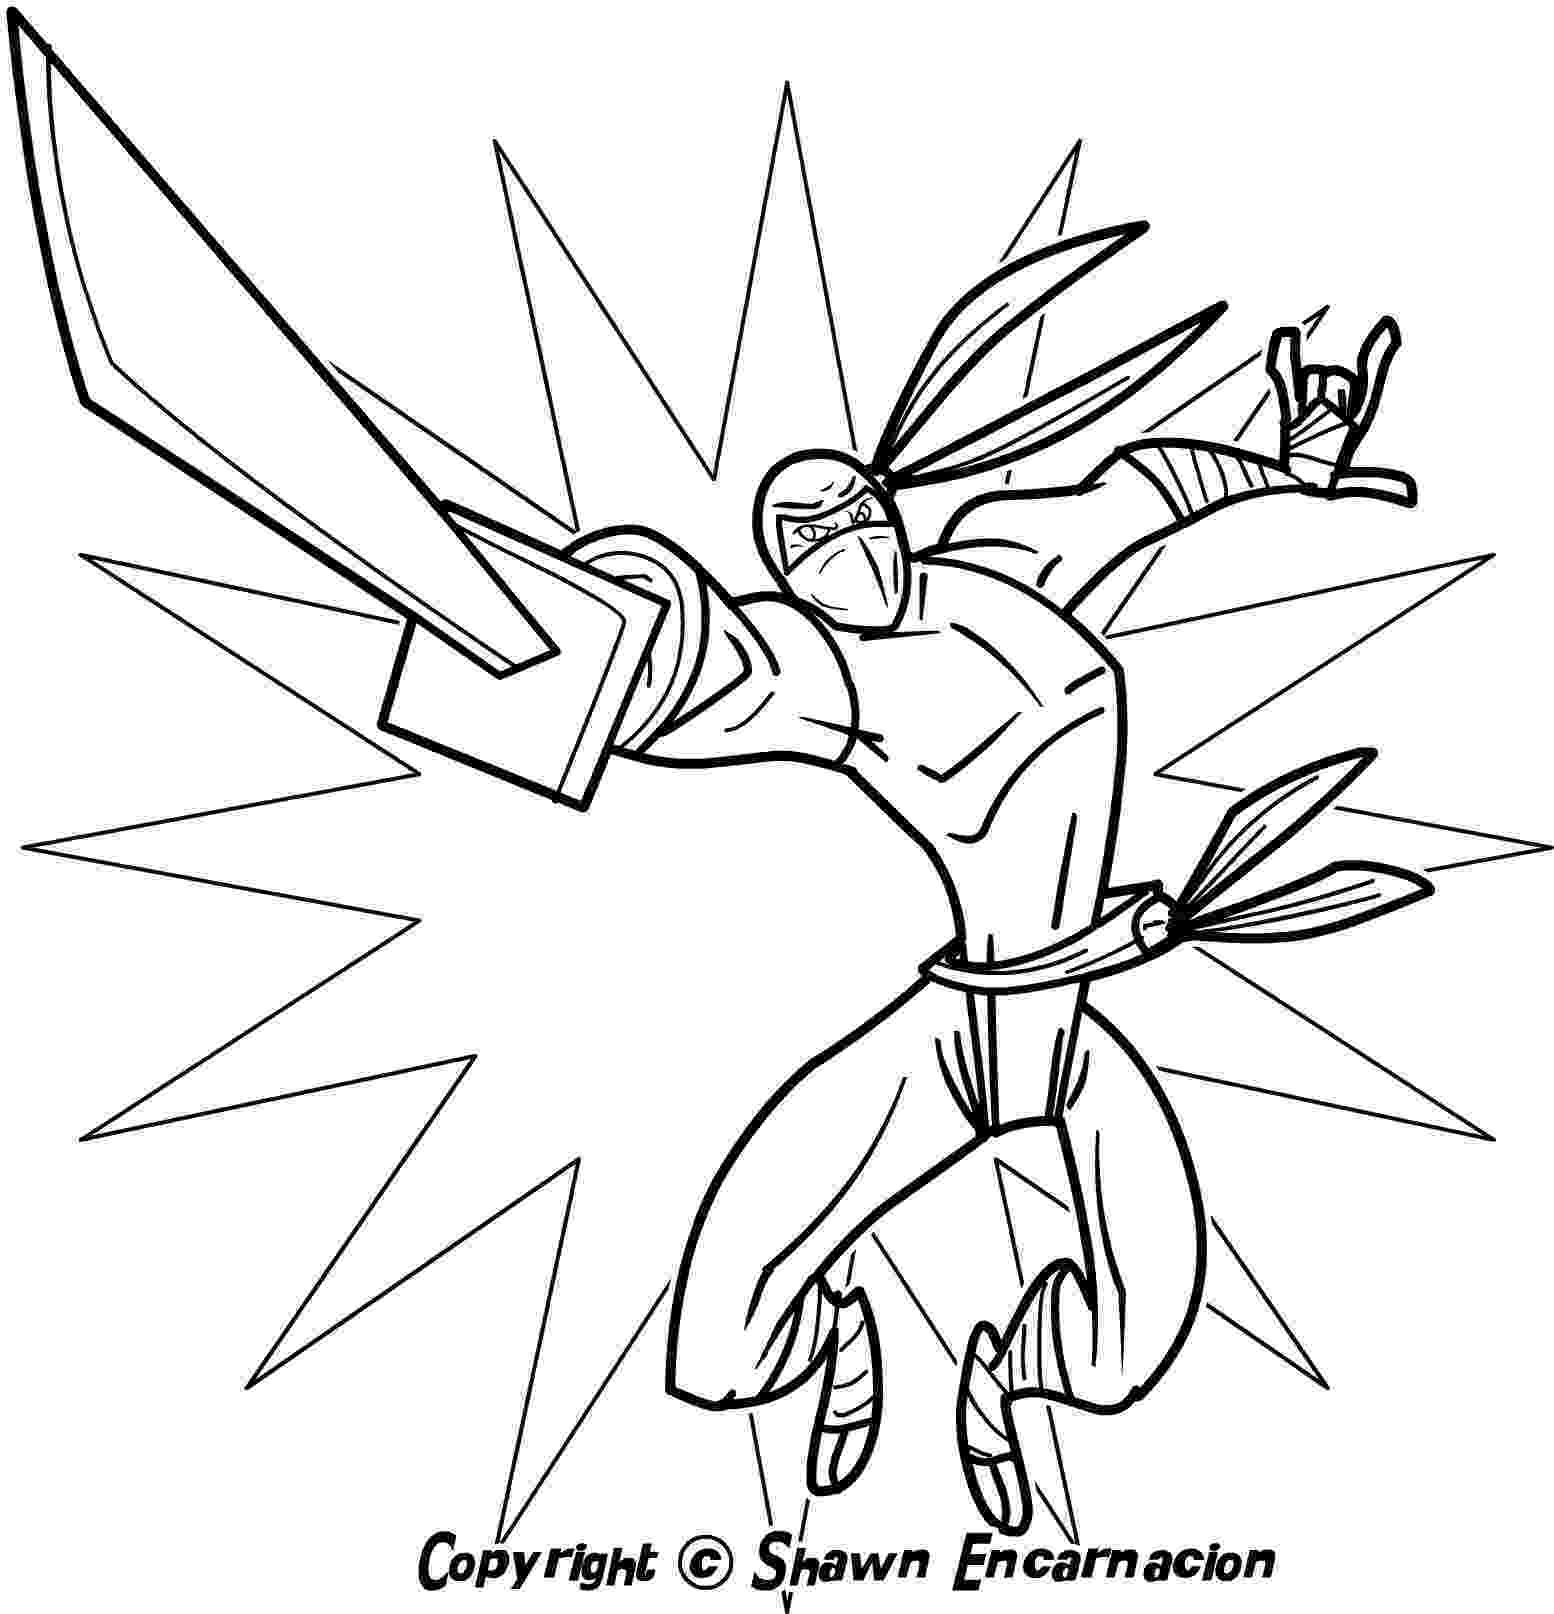 ninja coloring pages green ninja coloring pages for kids printable free lego coloring ninja pages